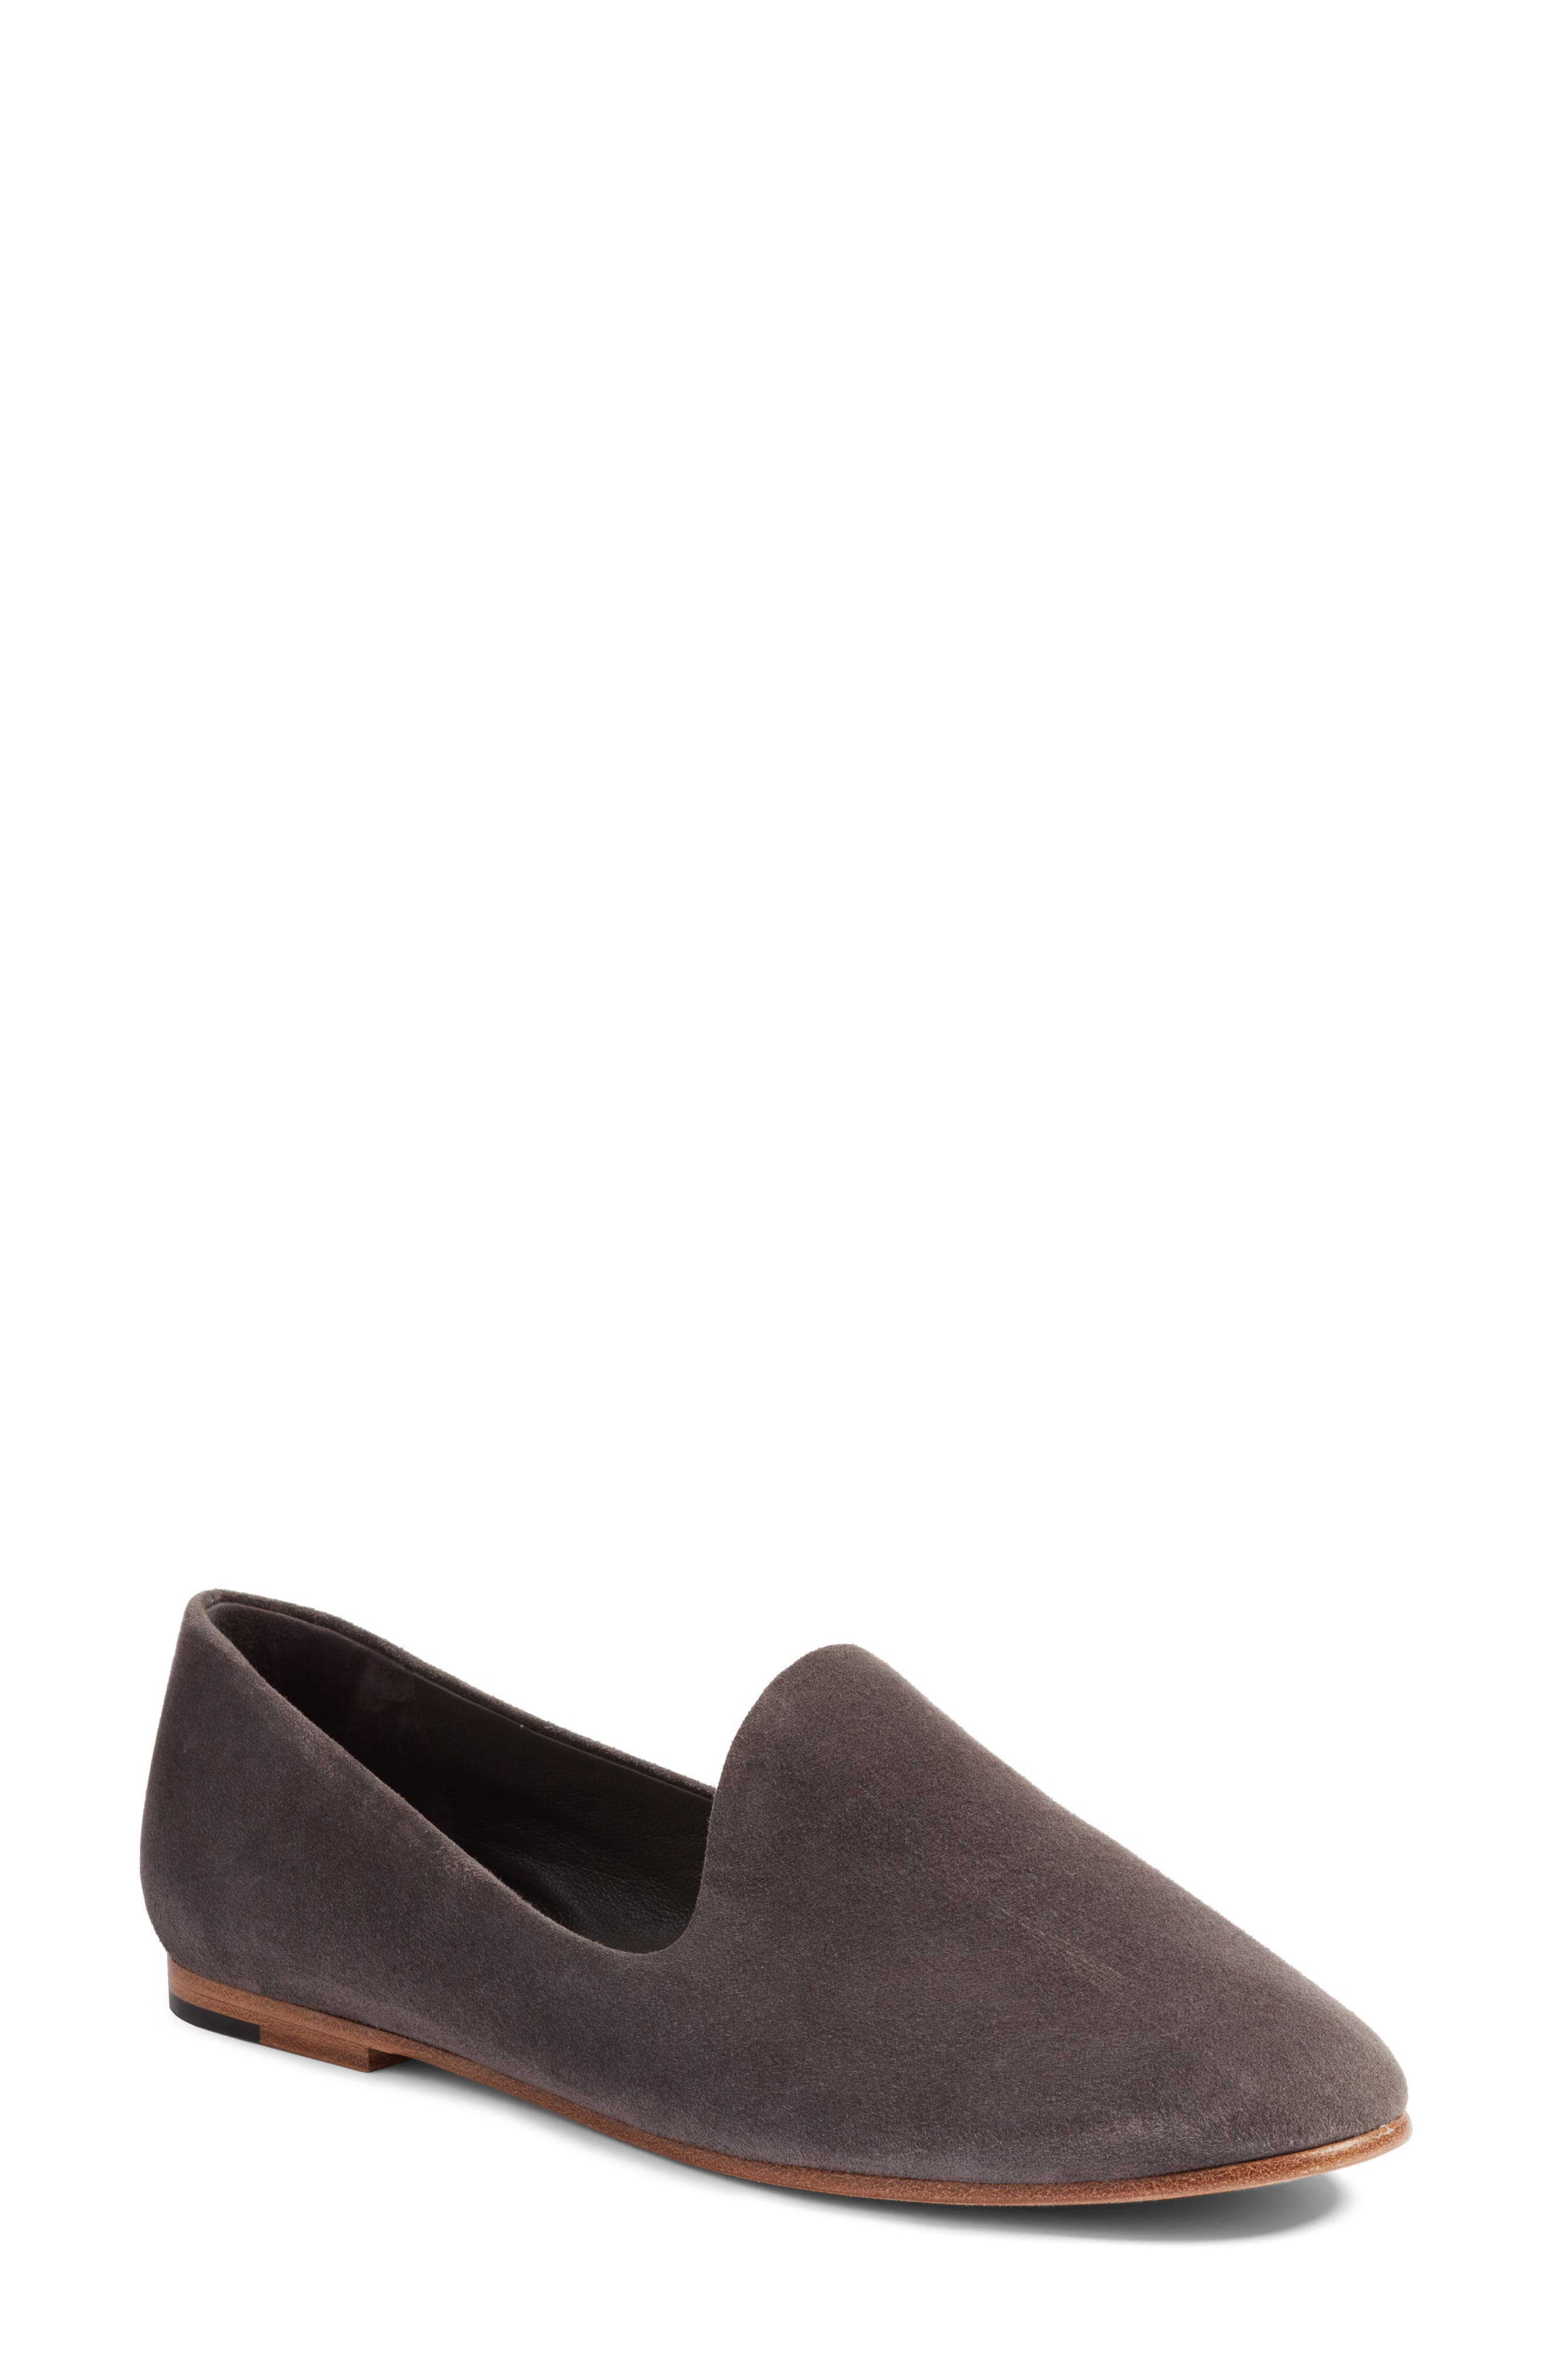 Main Image - Vince Milo Loafer (Women)